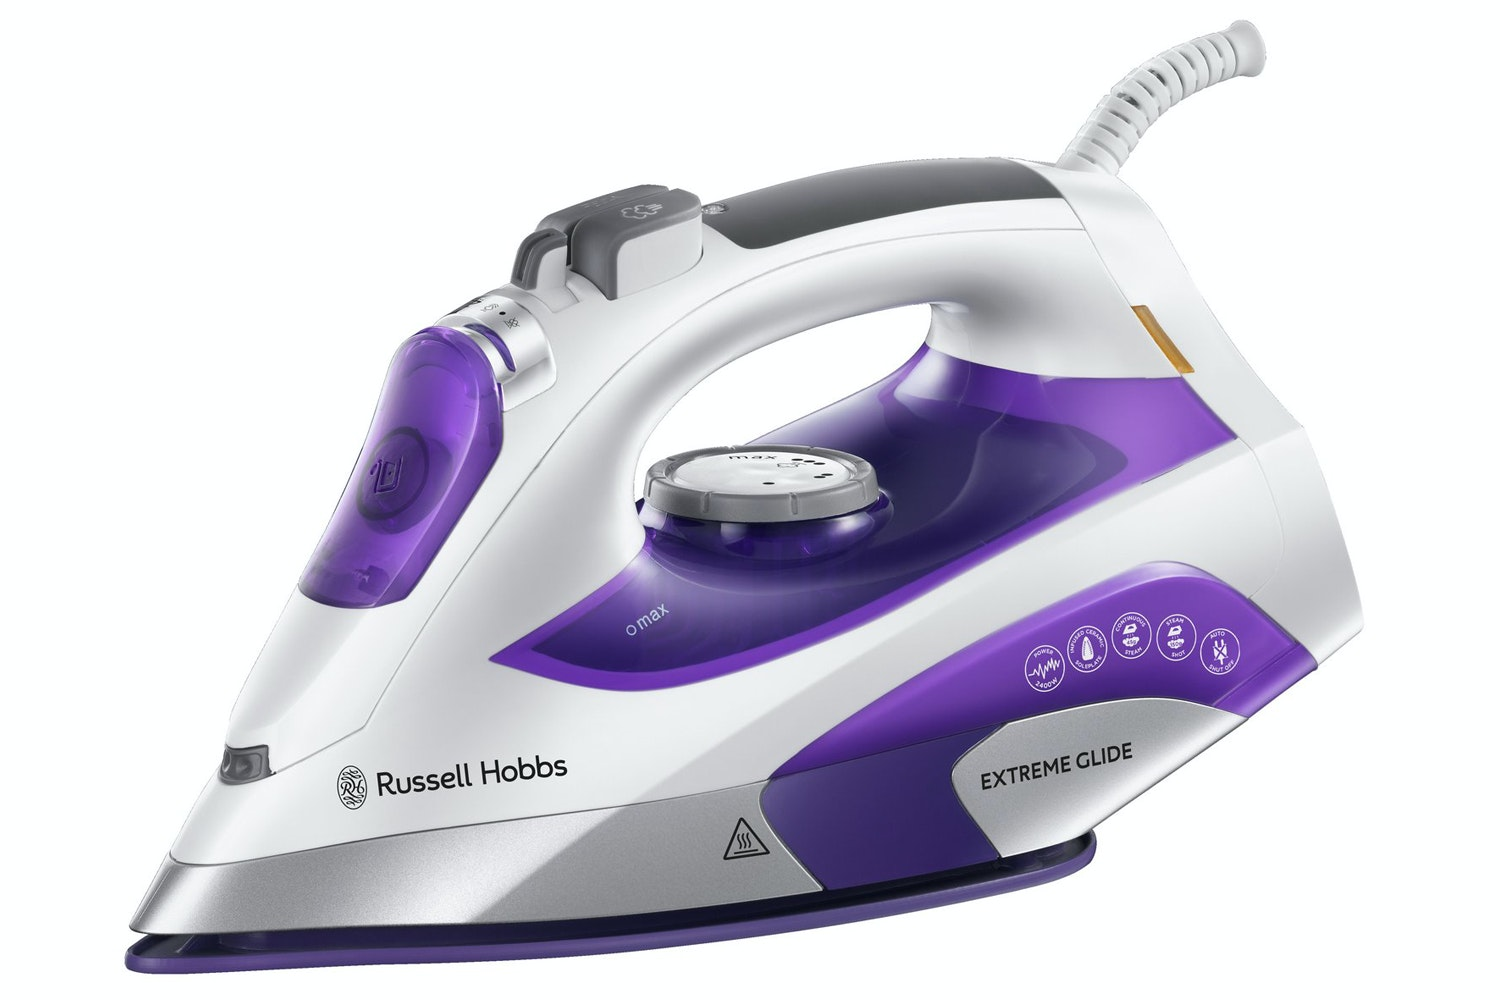 Russell Hobbs Extreme Glide Steam Iron | 21530